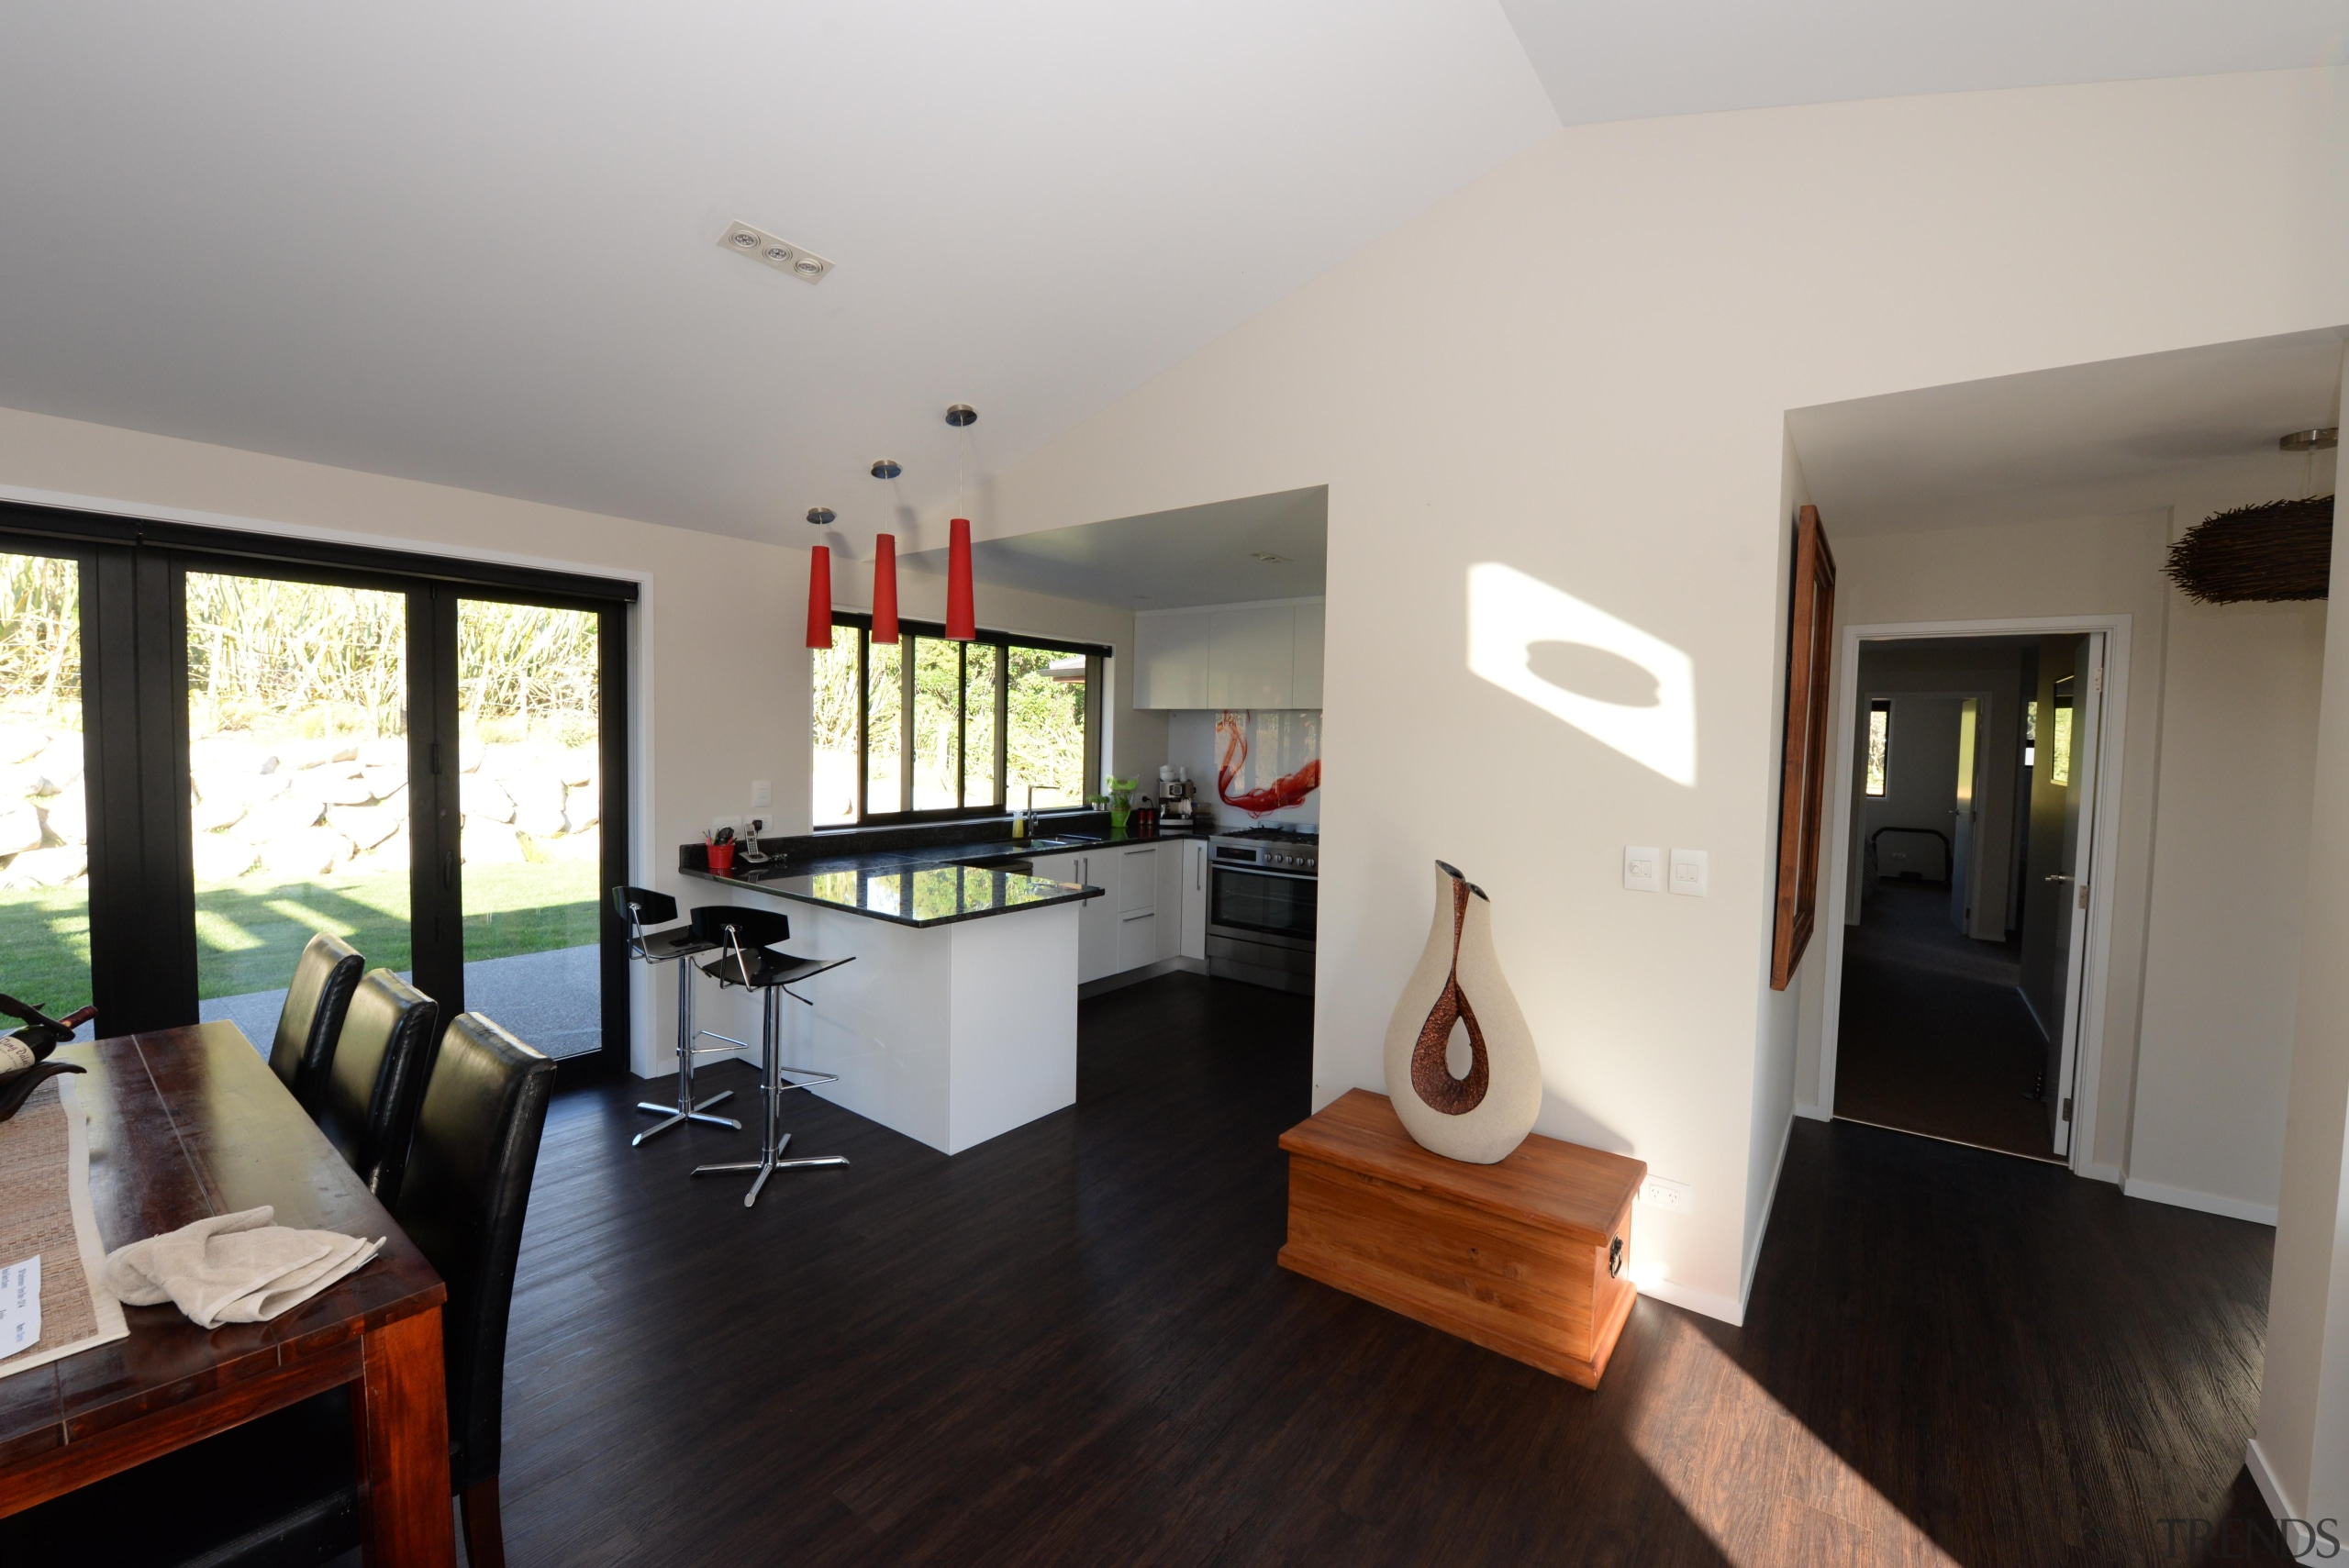 This home is built by Fowler Homes Taranaki floor, flooring, house, interior design, living room, property, real estate, room, gray, black